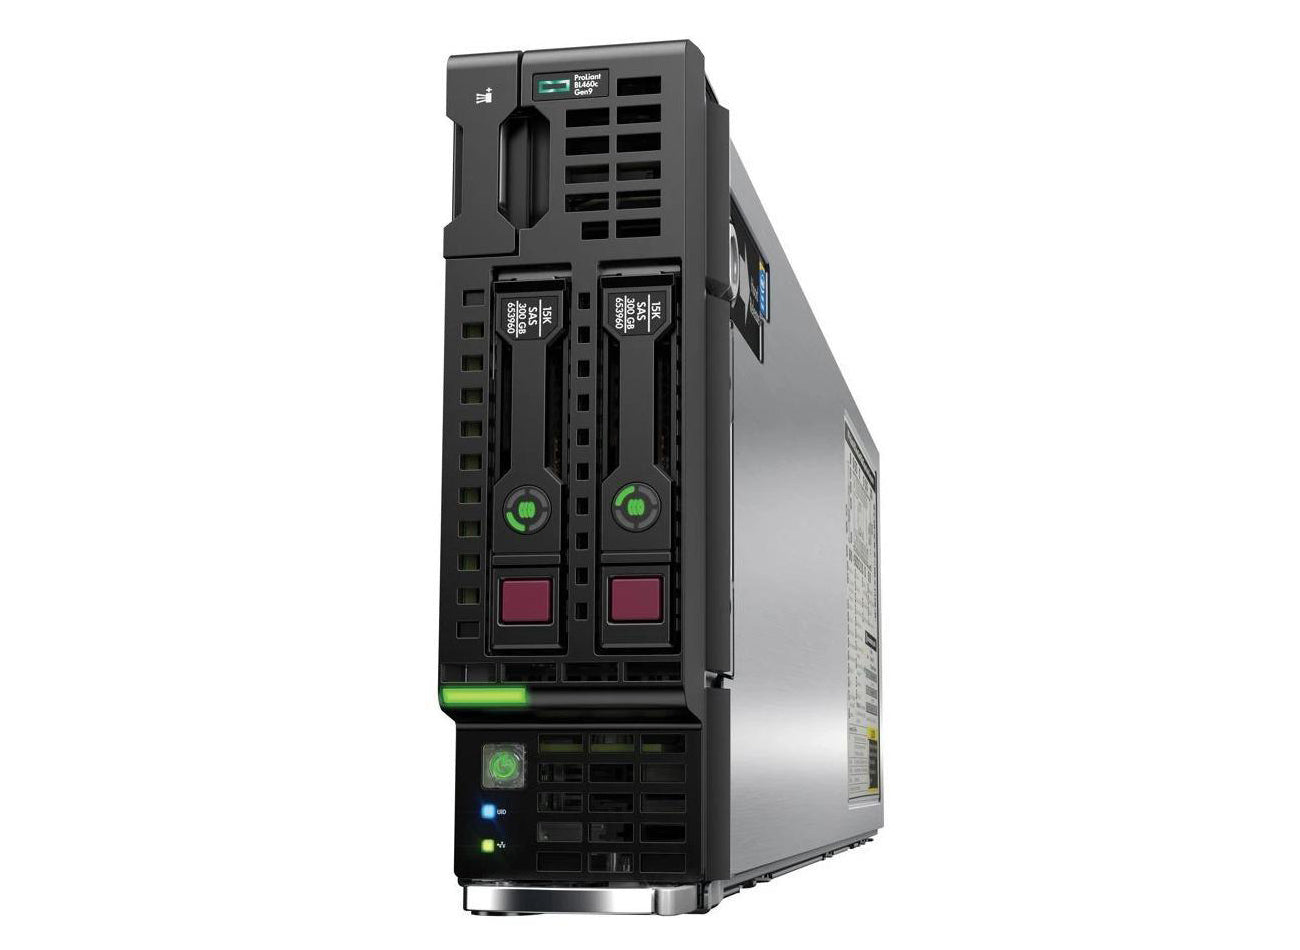 HPE ProLiant BL460c Gen9 CTO Server Blade